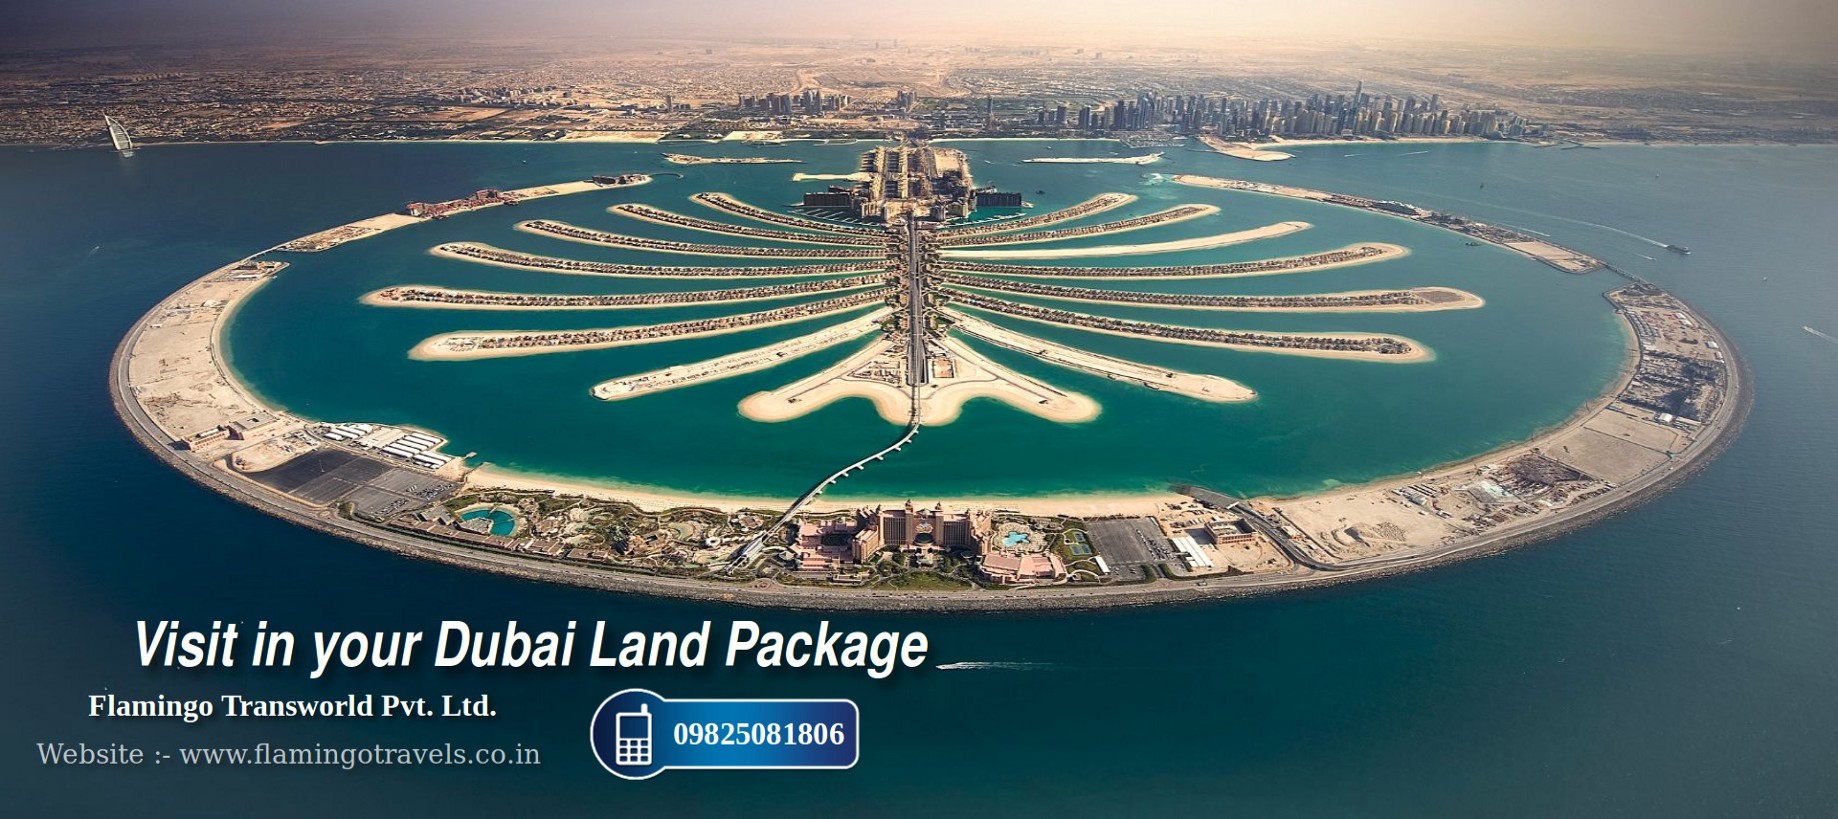 Dubai Tour Packages From Ahmedabad — Things To Do And Enjoy In Dubai